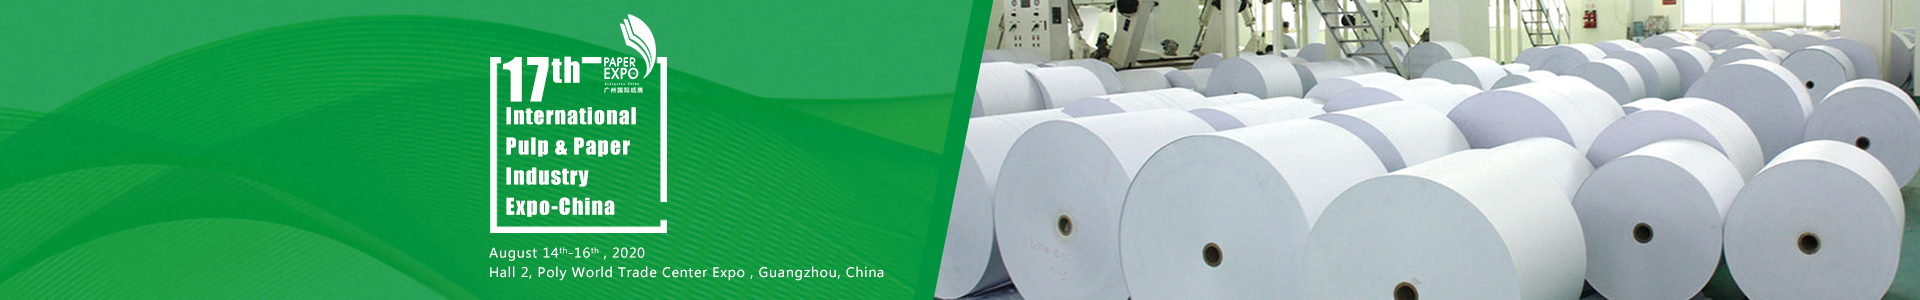 The 17th International Pulp & Paper Industry Expo-China